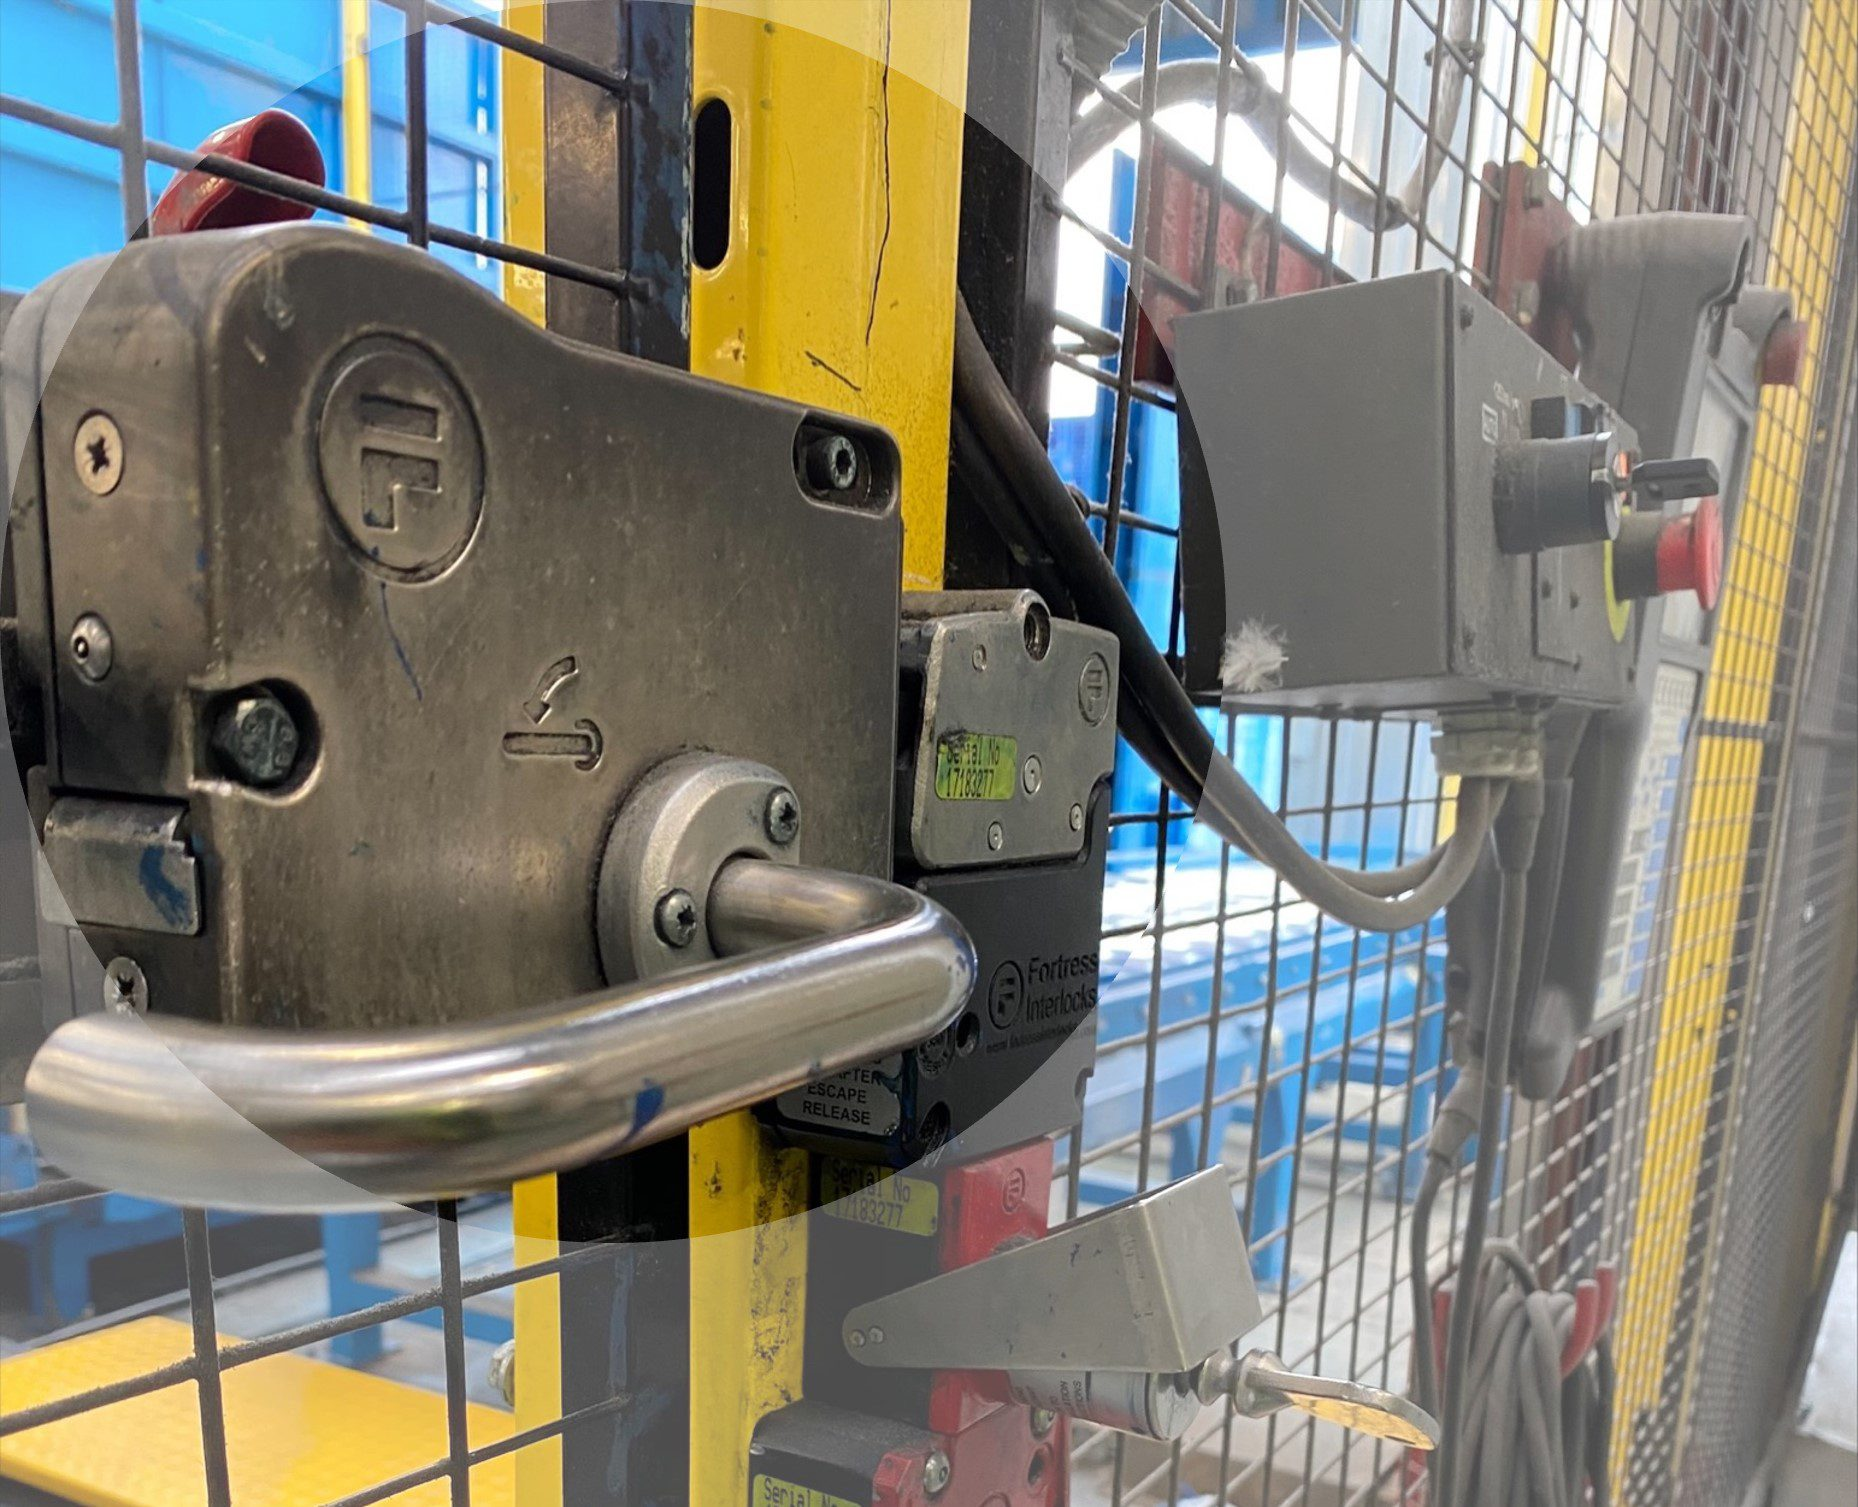 Heavy Duty Actuator for Entry Access